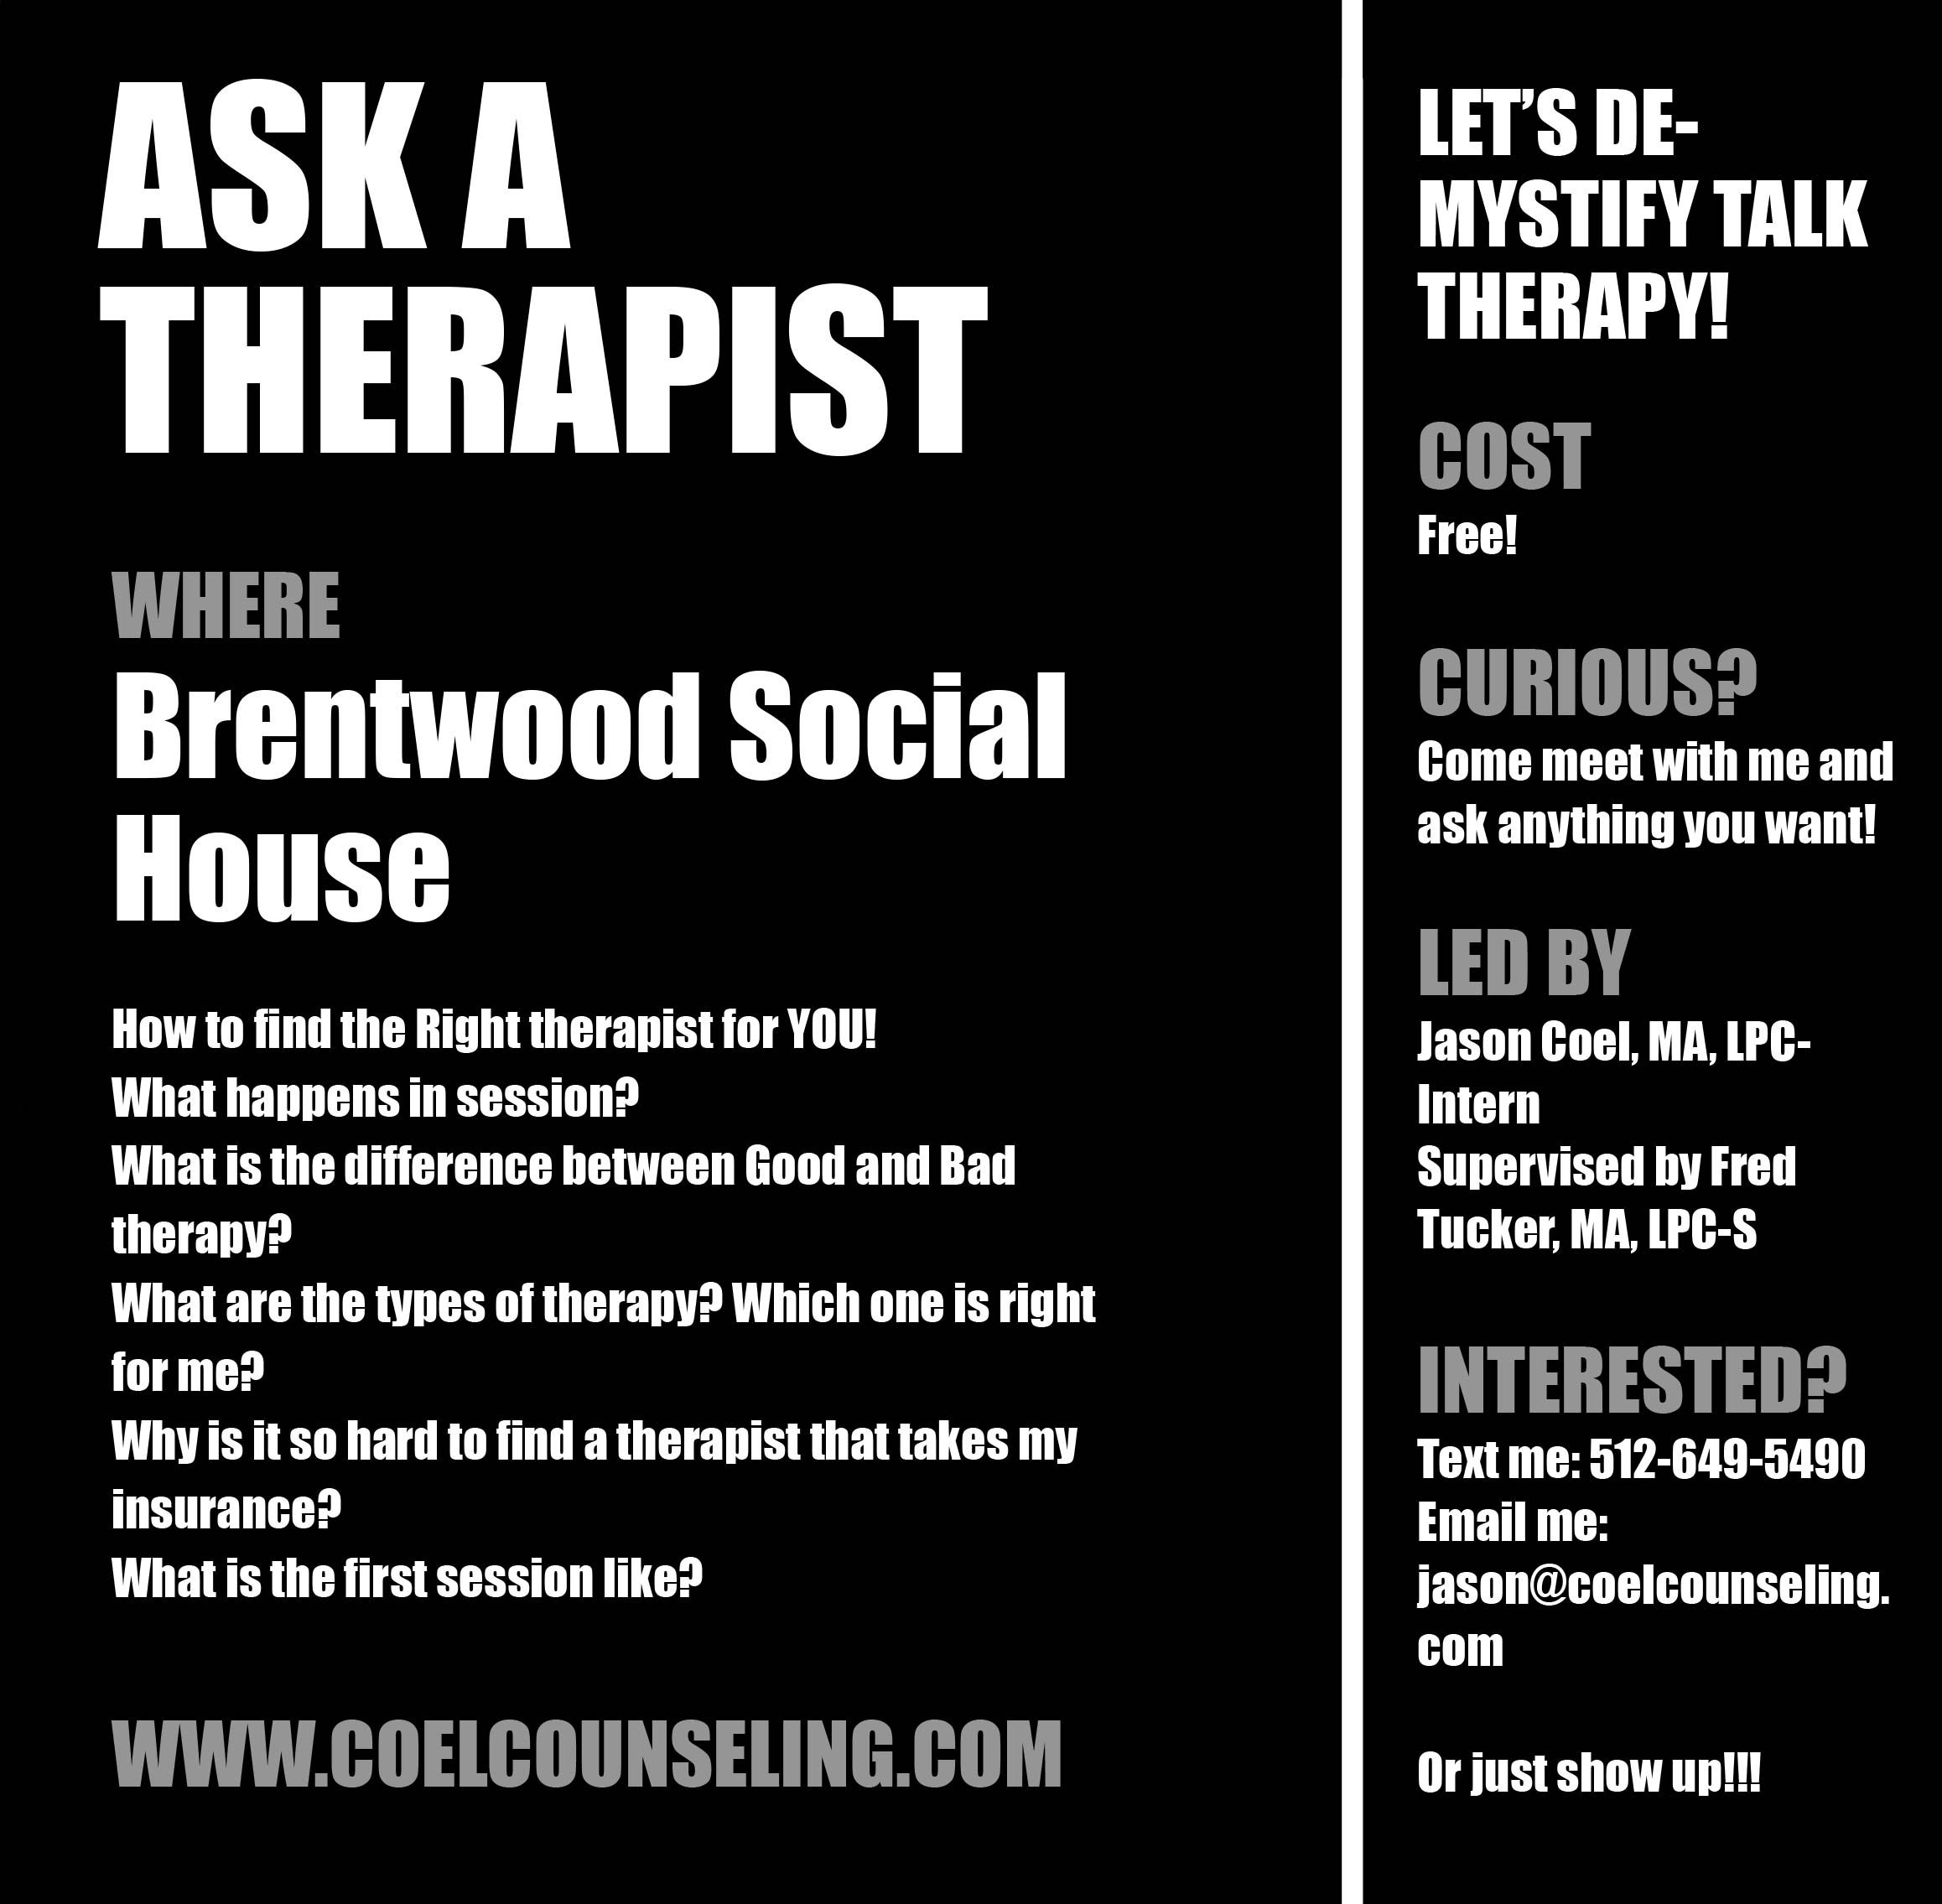 Ask-a-Therapist_general.jpg